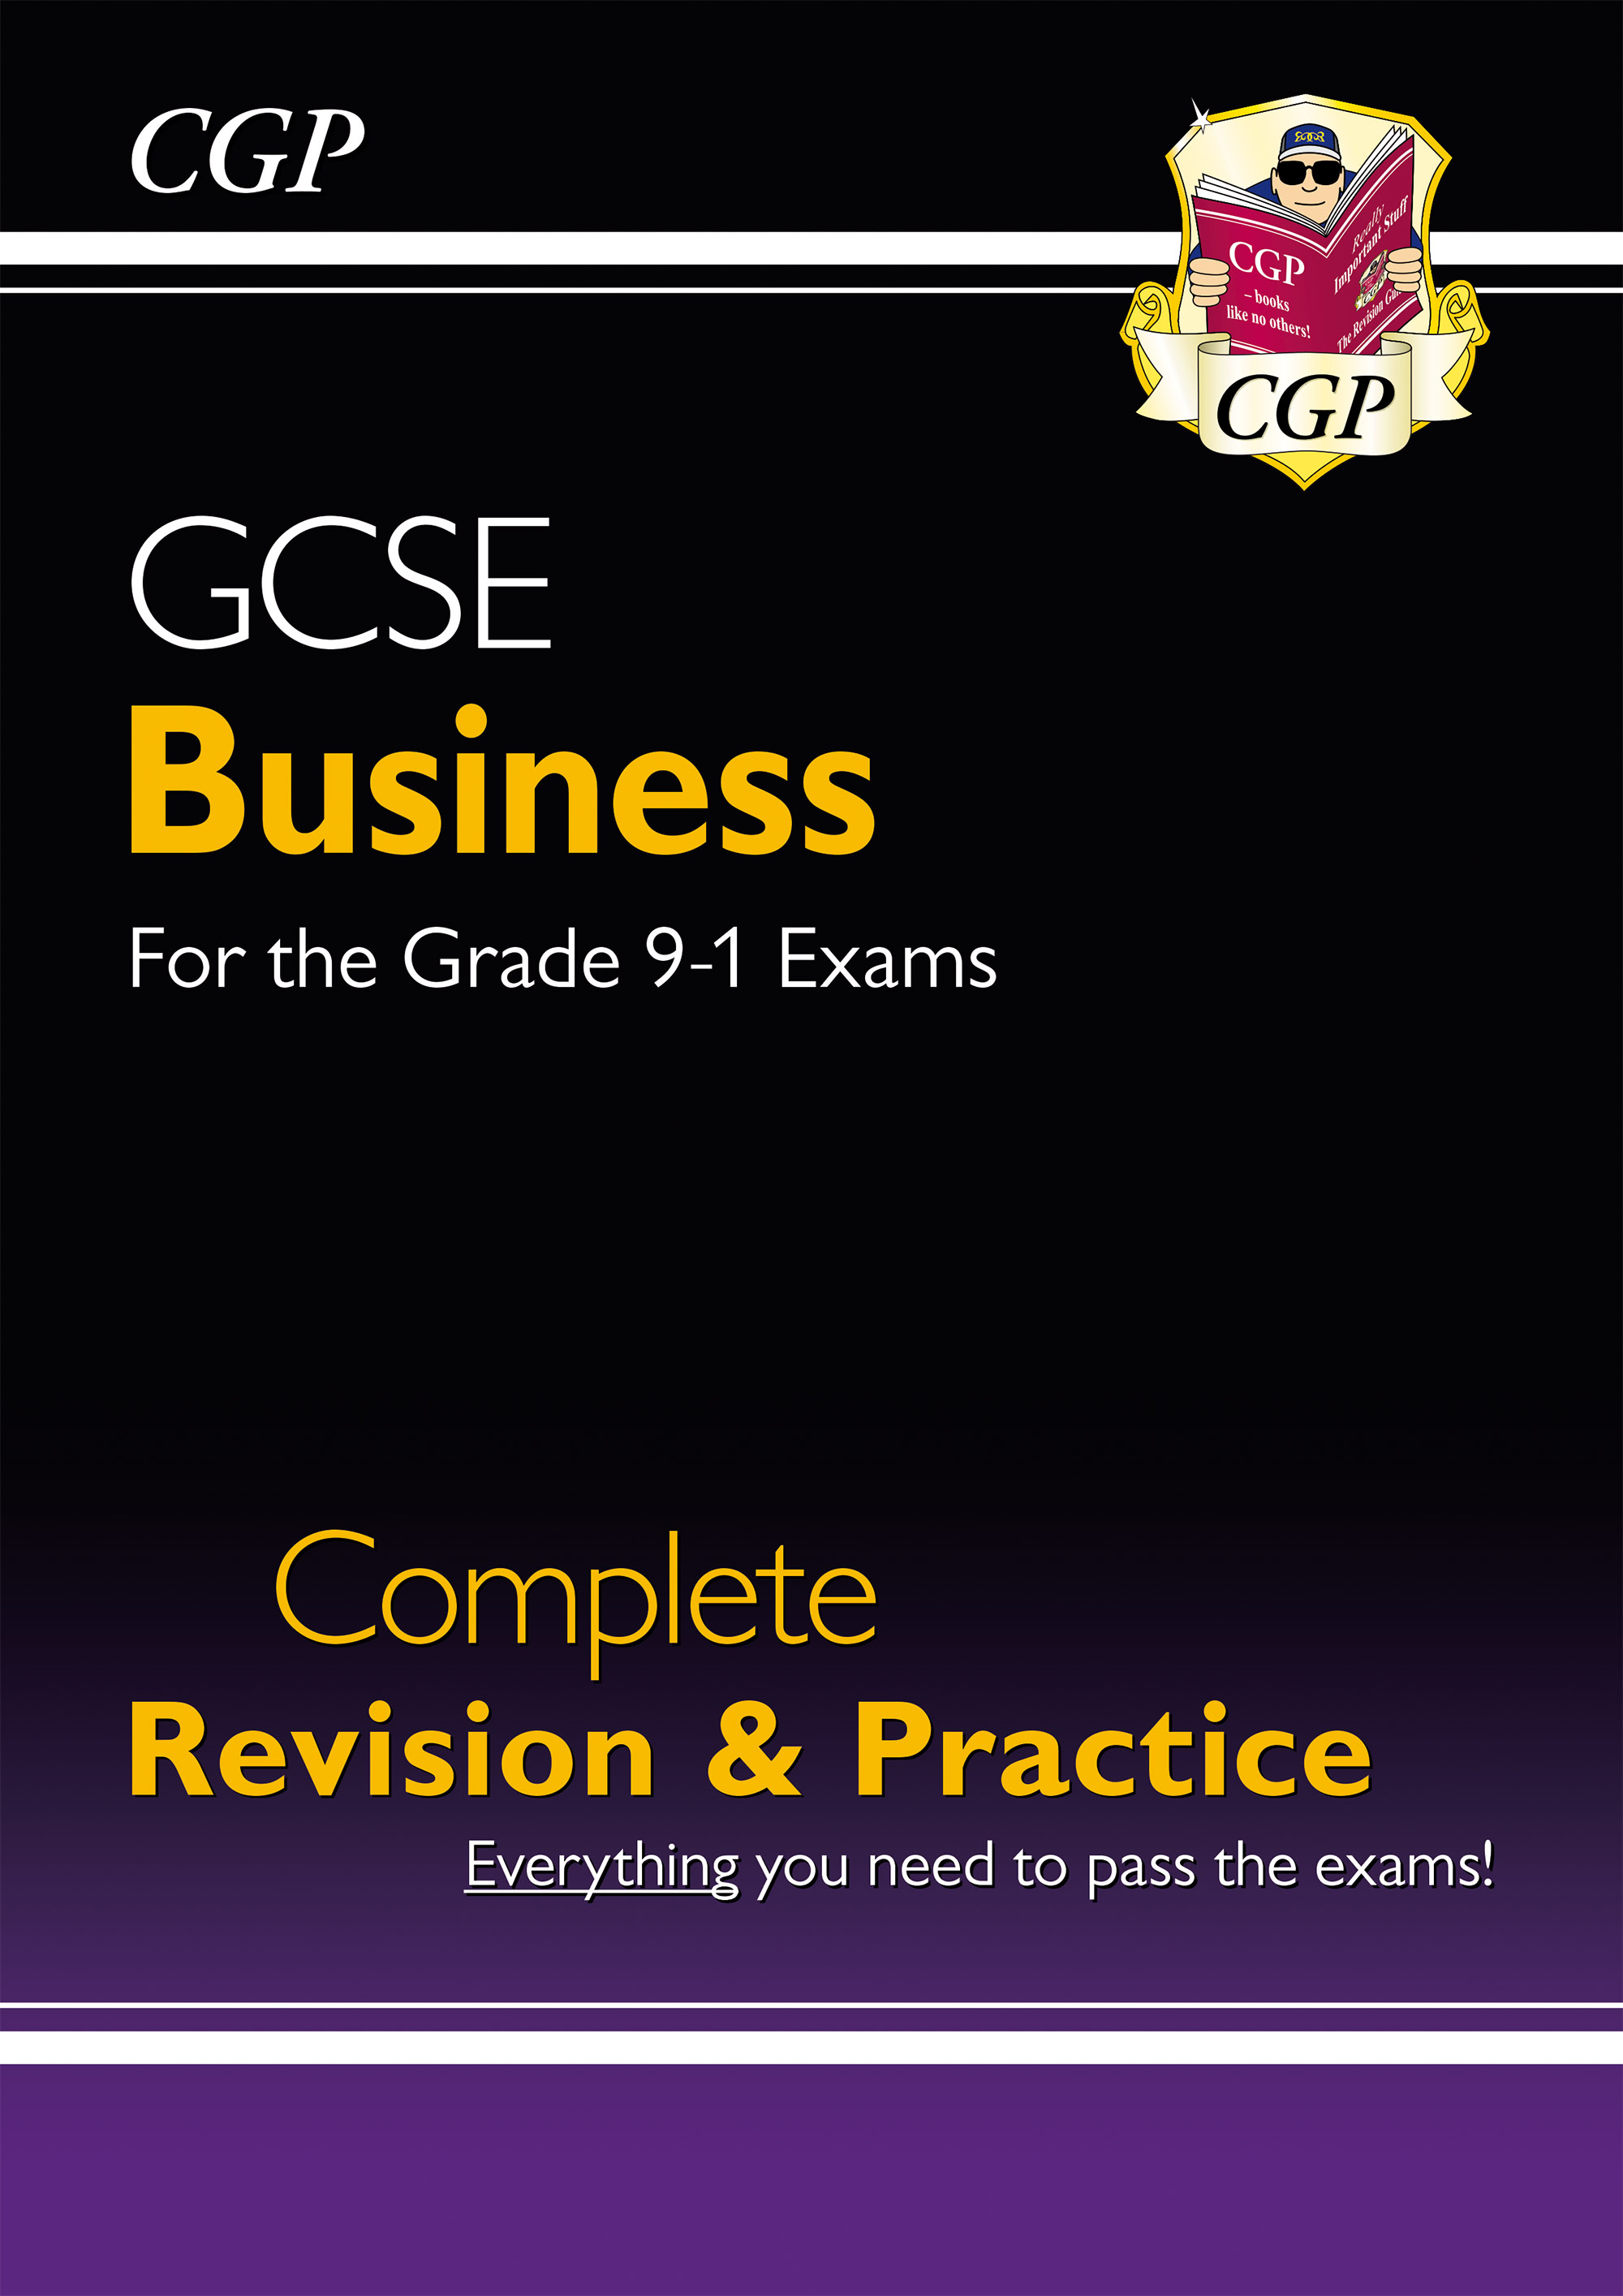 BUHS44DK - New GCSE Business Complete Revision and Practice - for the Grade 9-1 Course